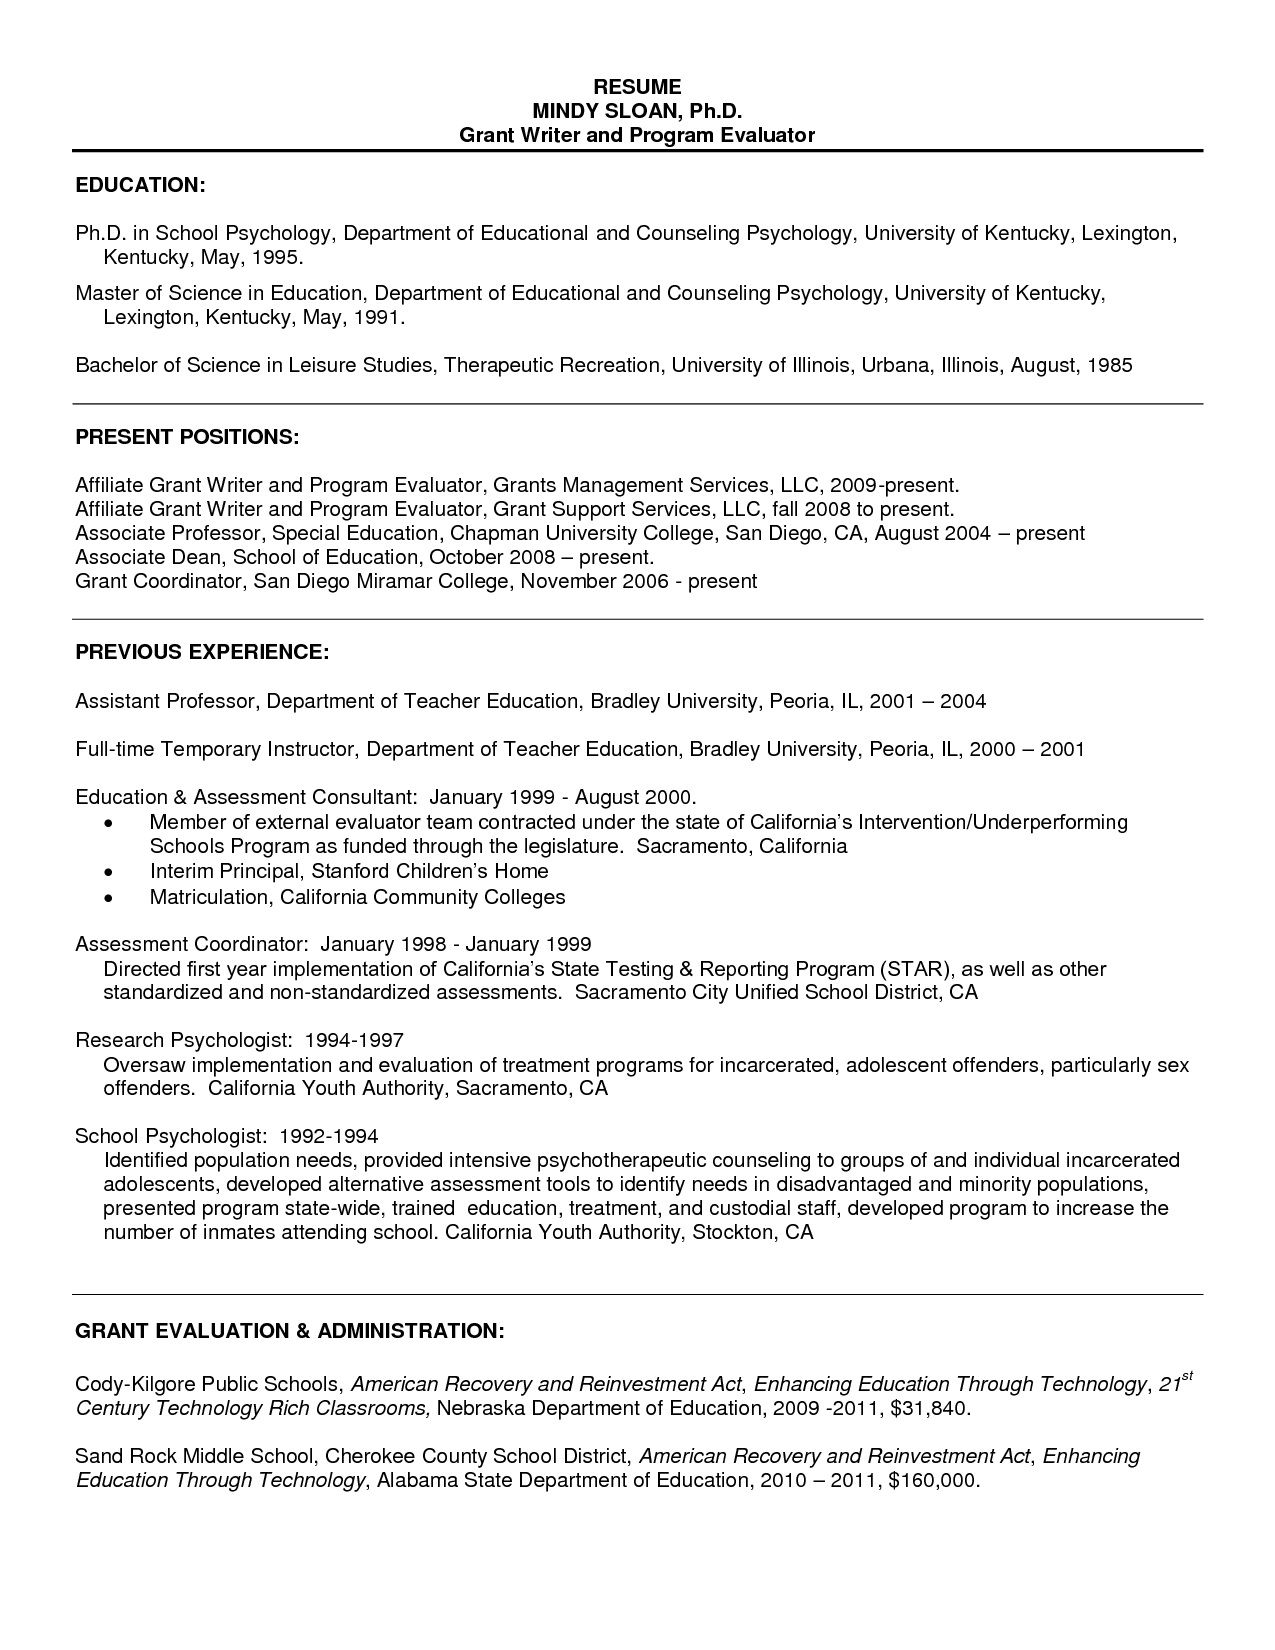 Resume For Masters Program